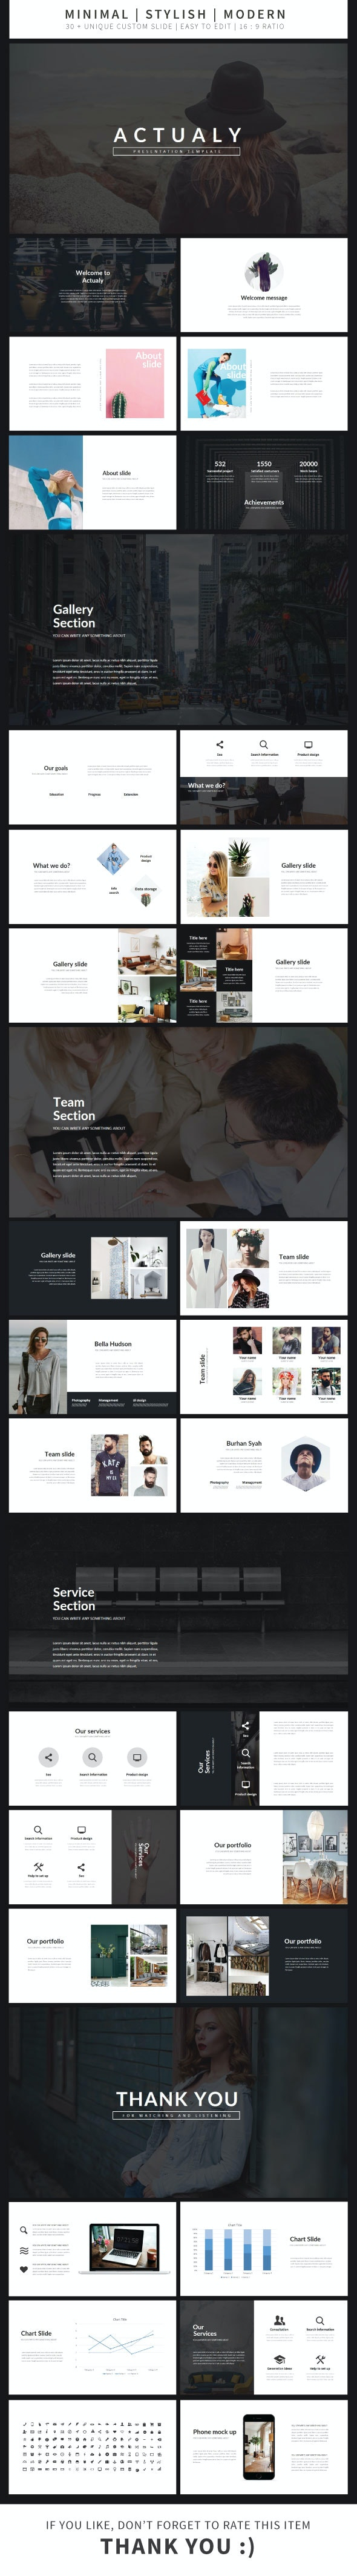 Actualy Keynote Template - Business Keynote Templates